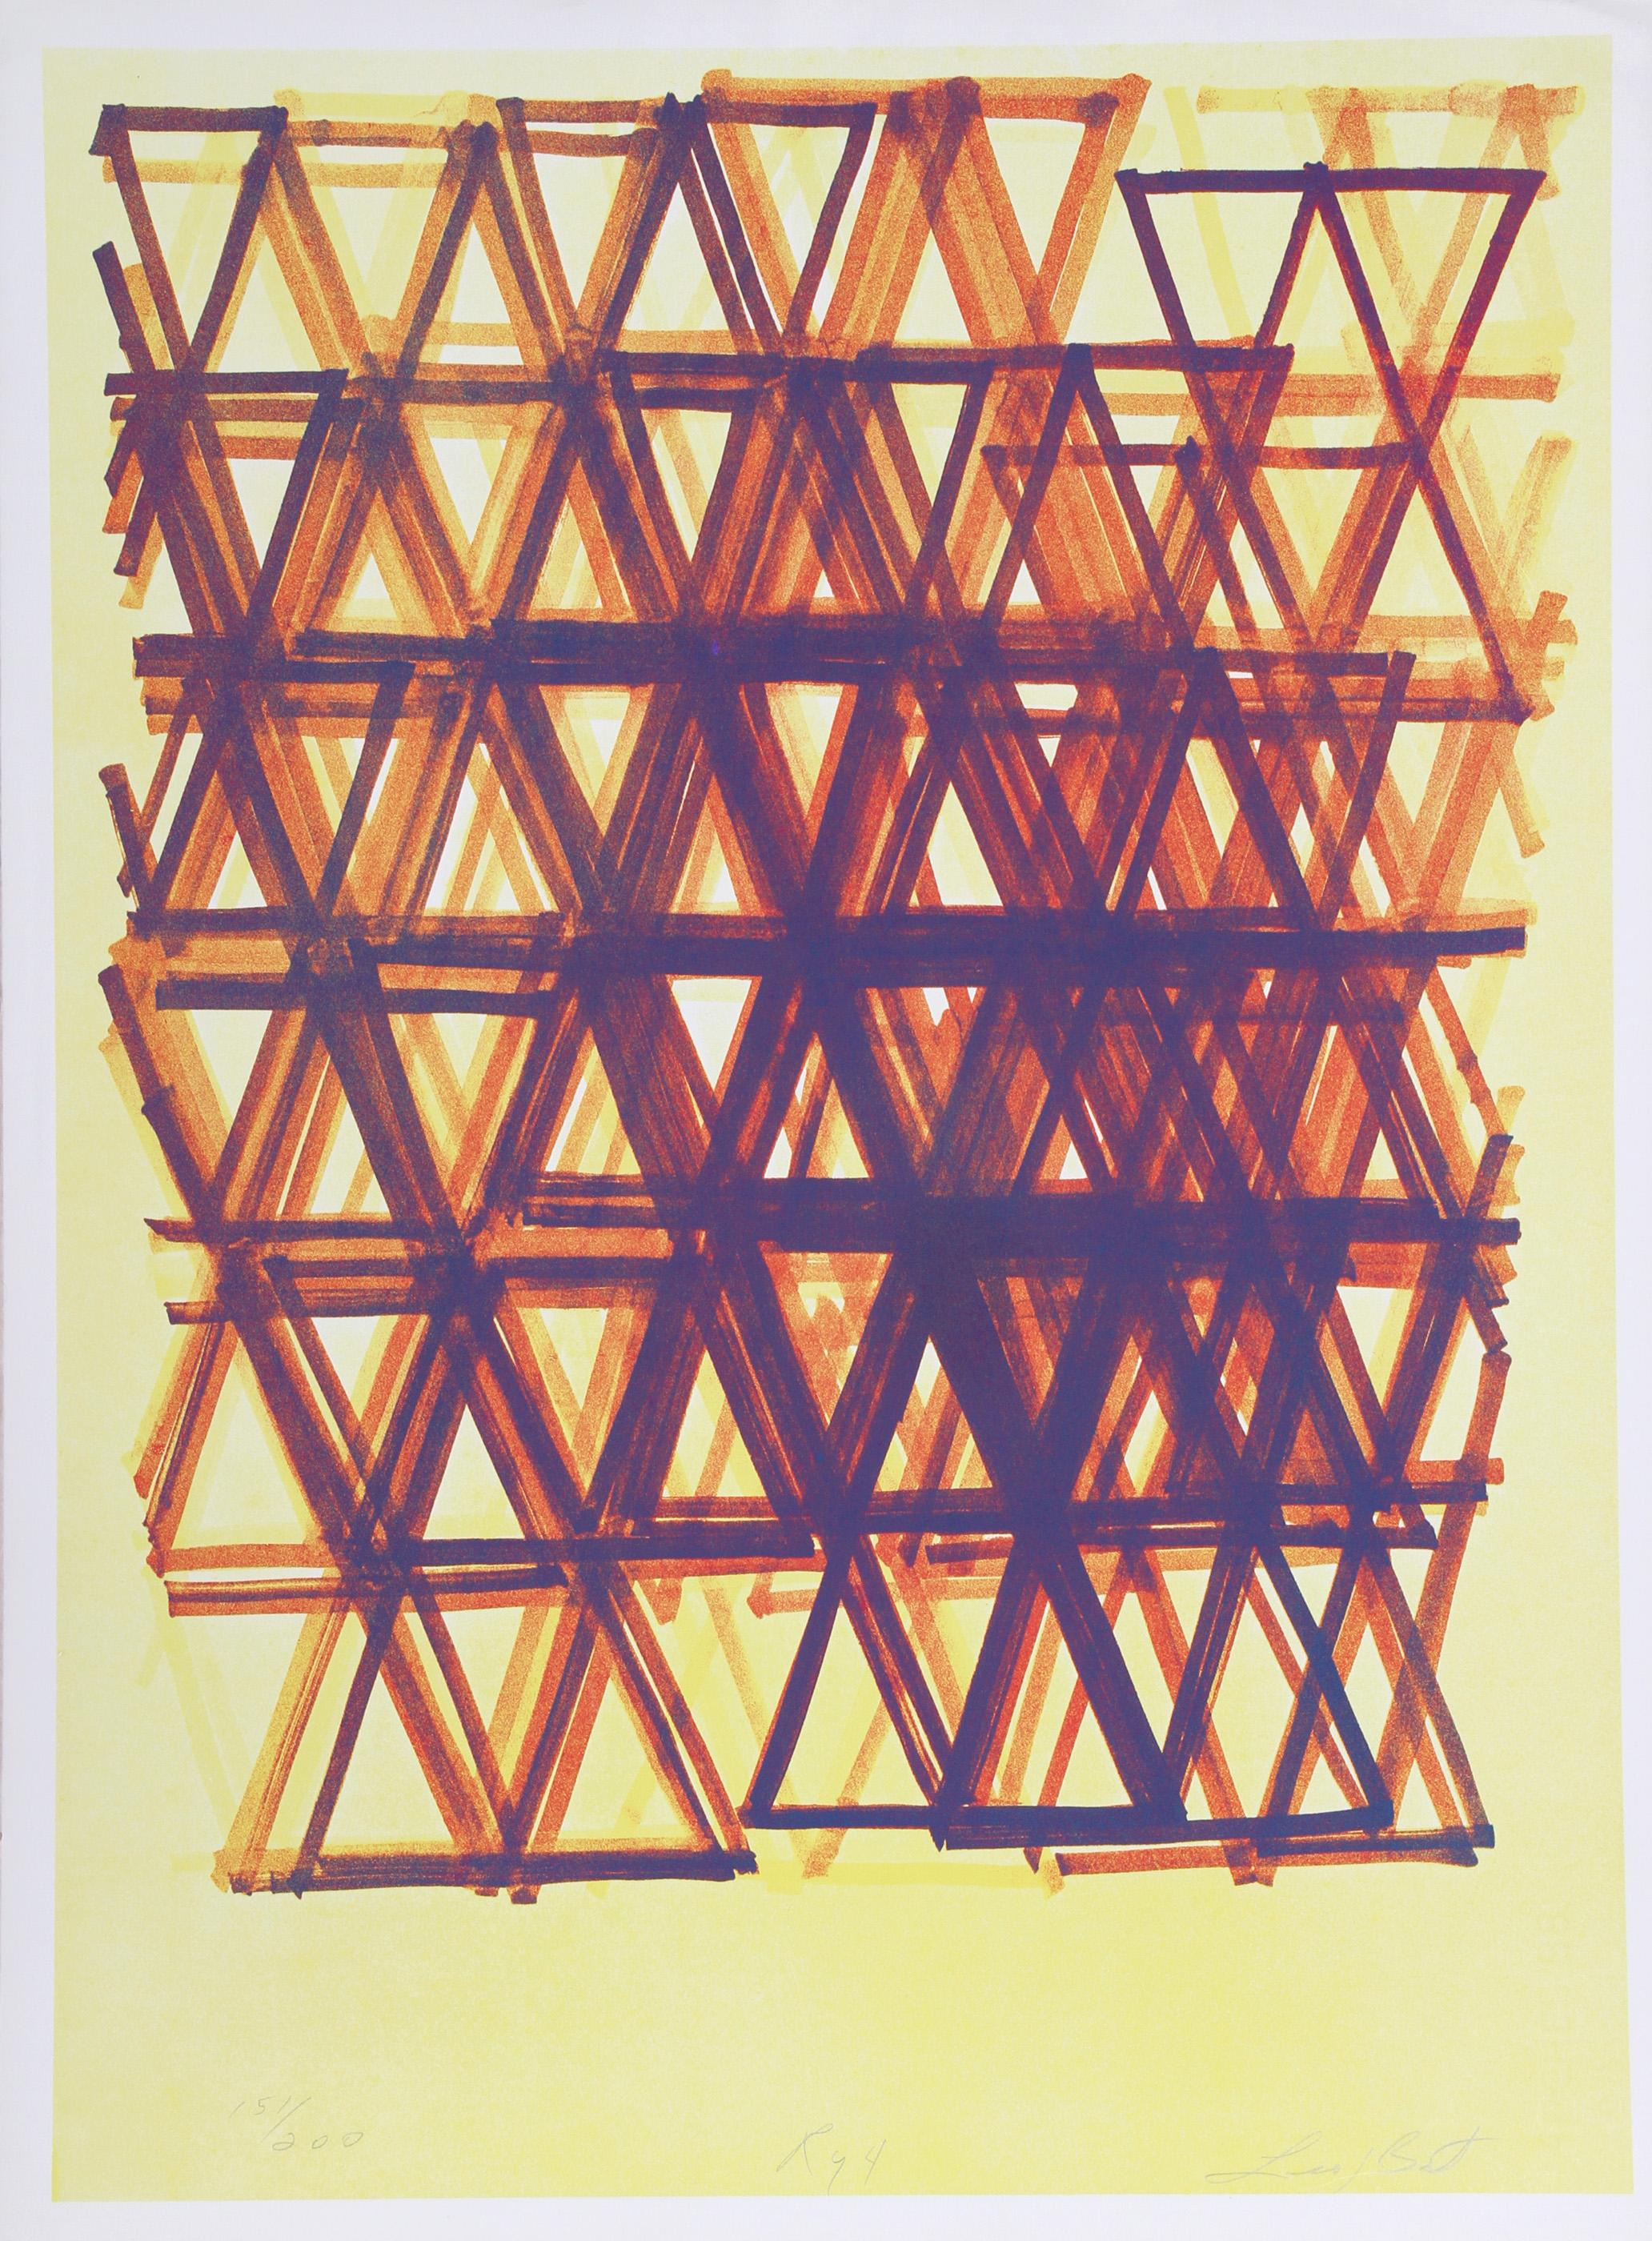 Leo Bates, Rhythm Series IV, Screenprint